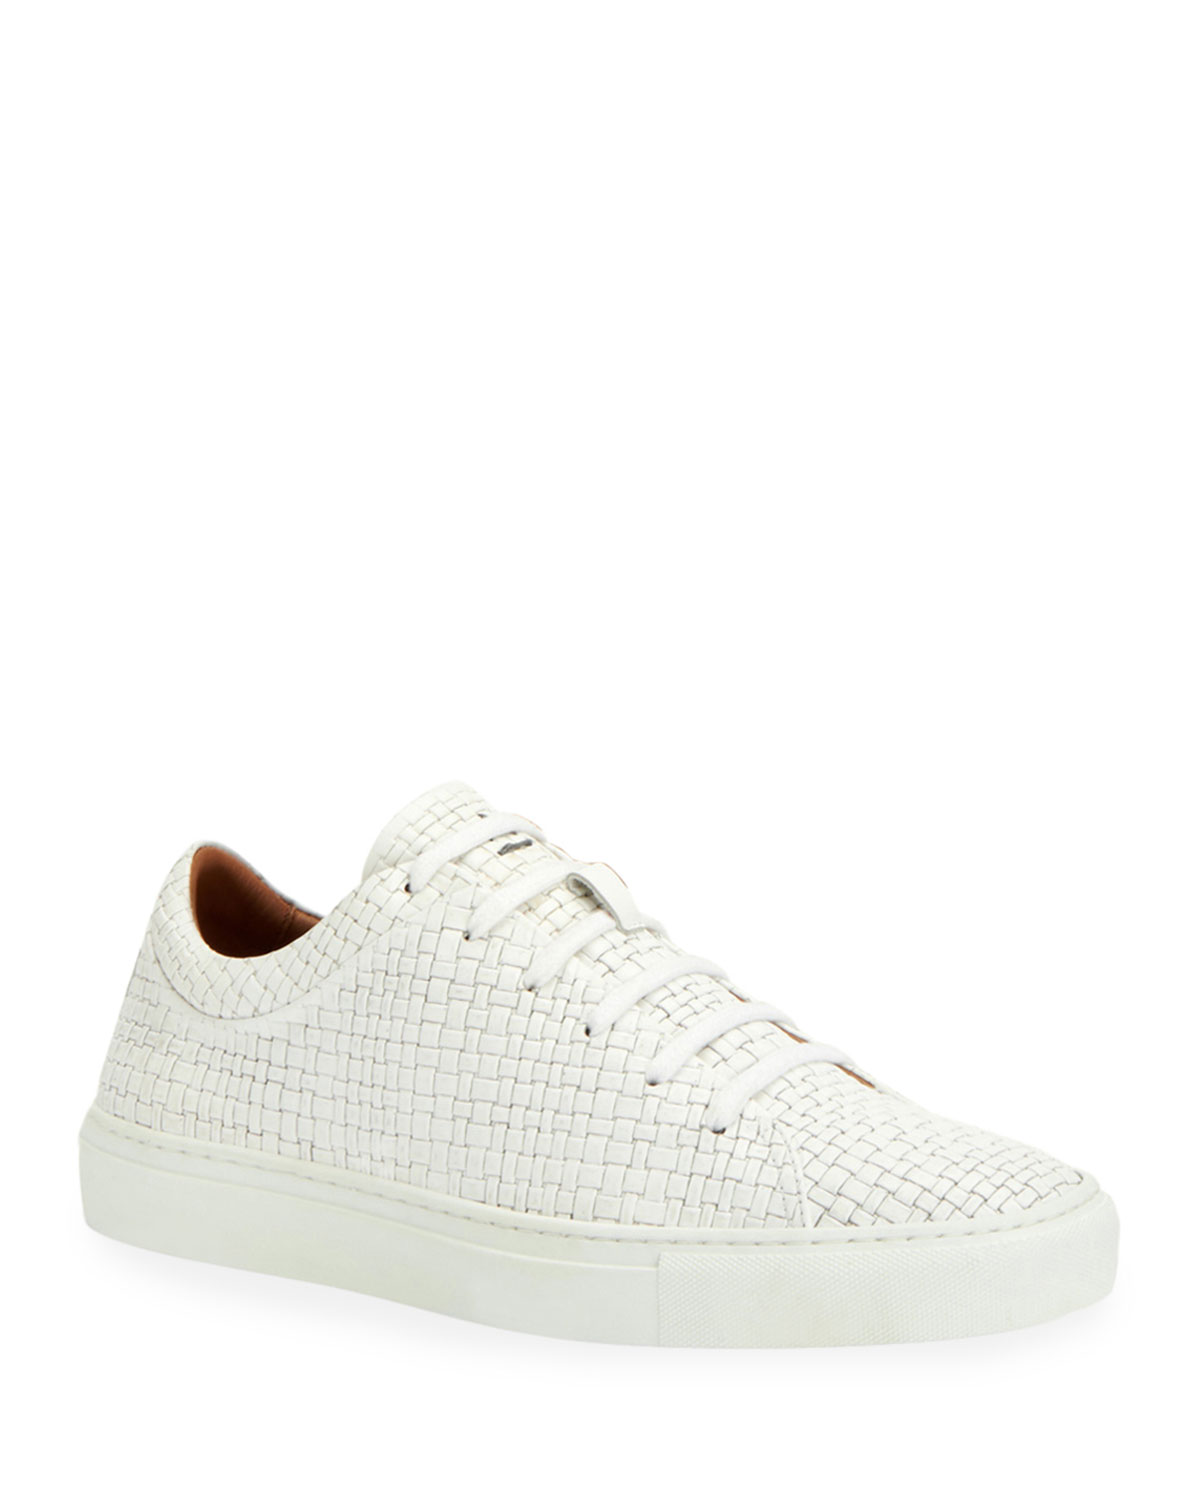 Aquatalia Sneakers MEN'S ALARIC EMBOSSED LEATHER LOW-TOP SNEAKERS